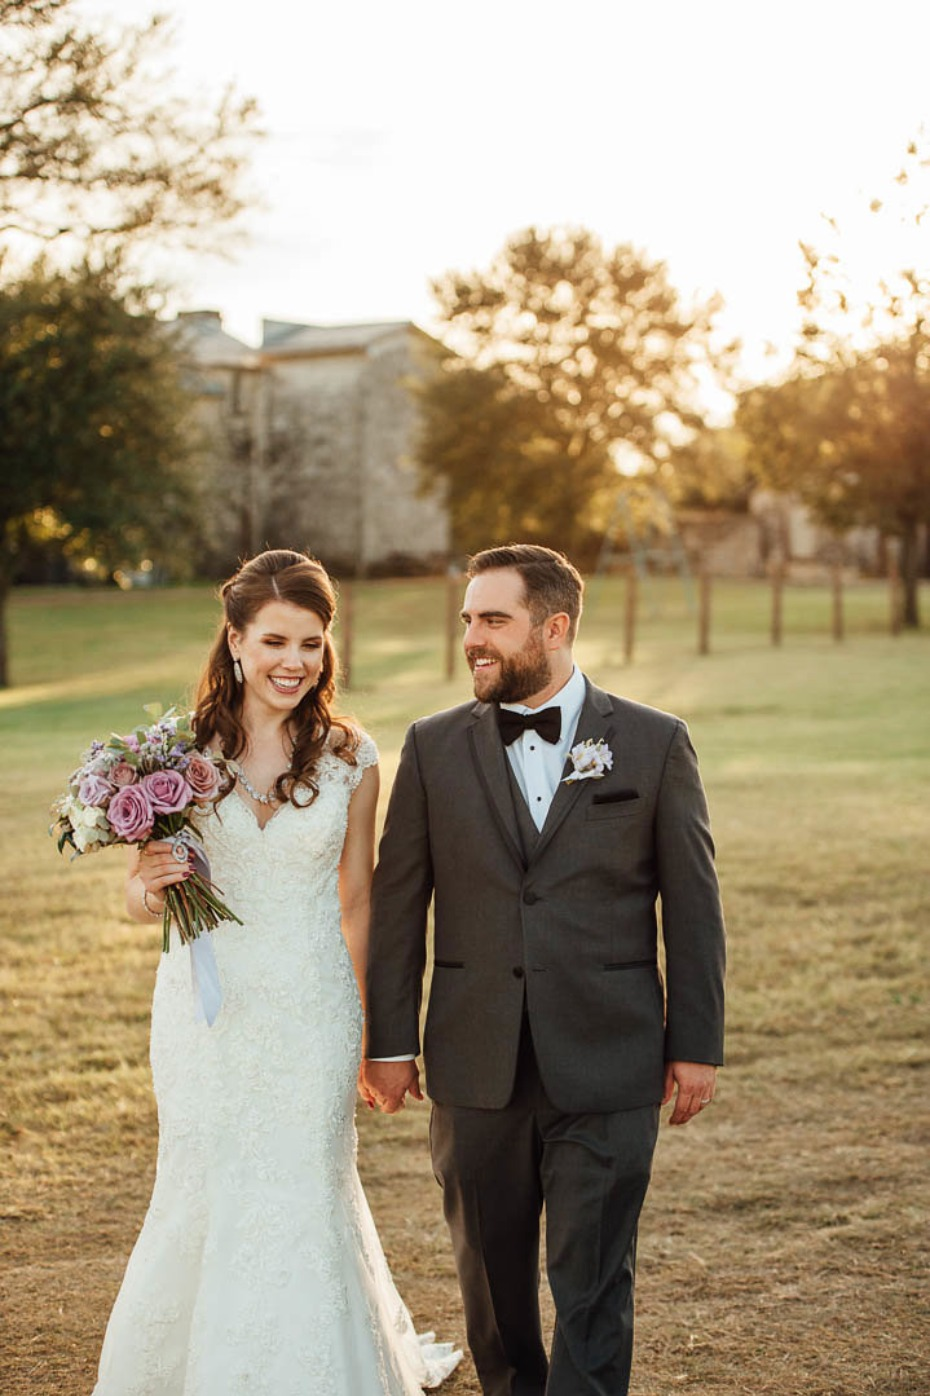 Dreamy fall wedding in purple and green